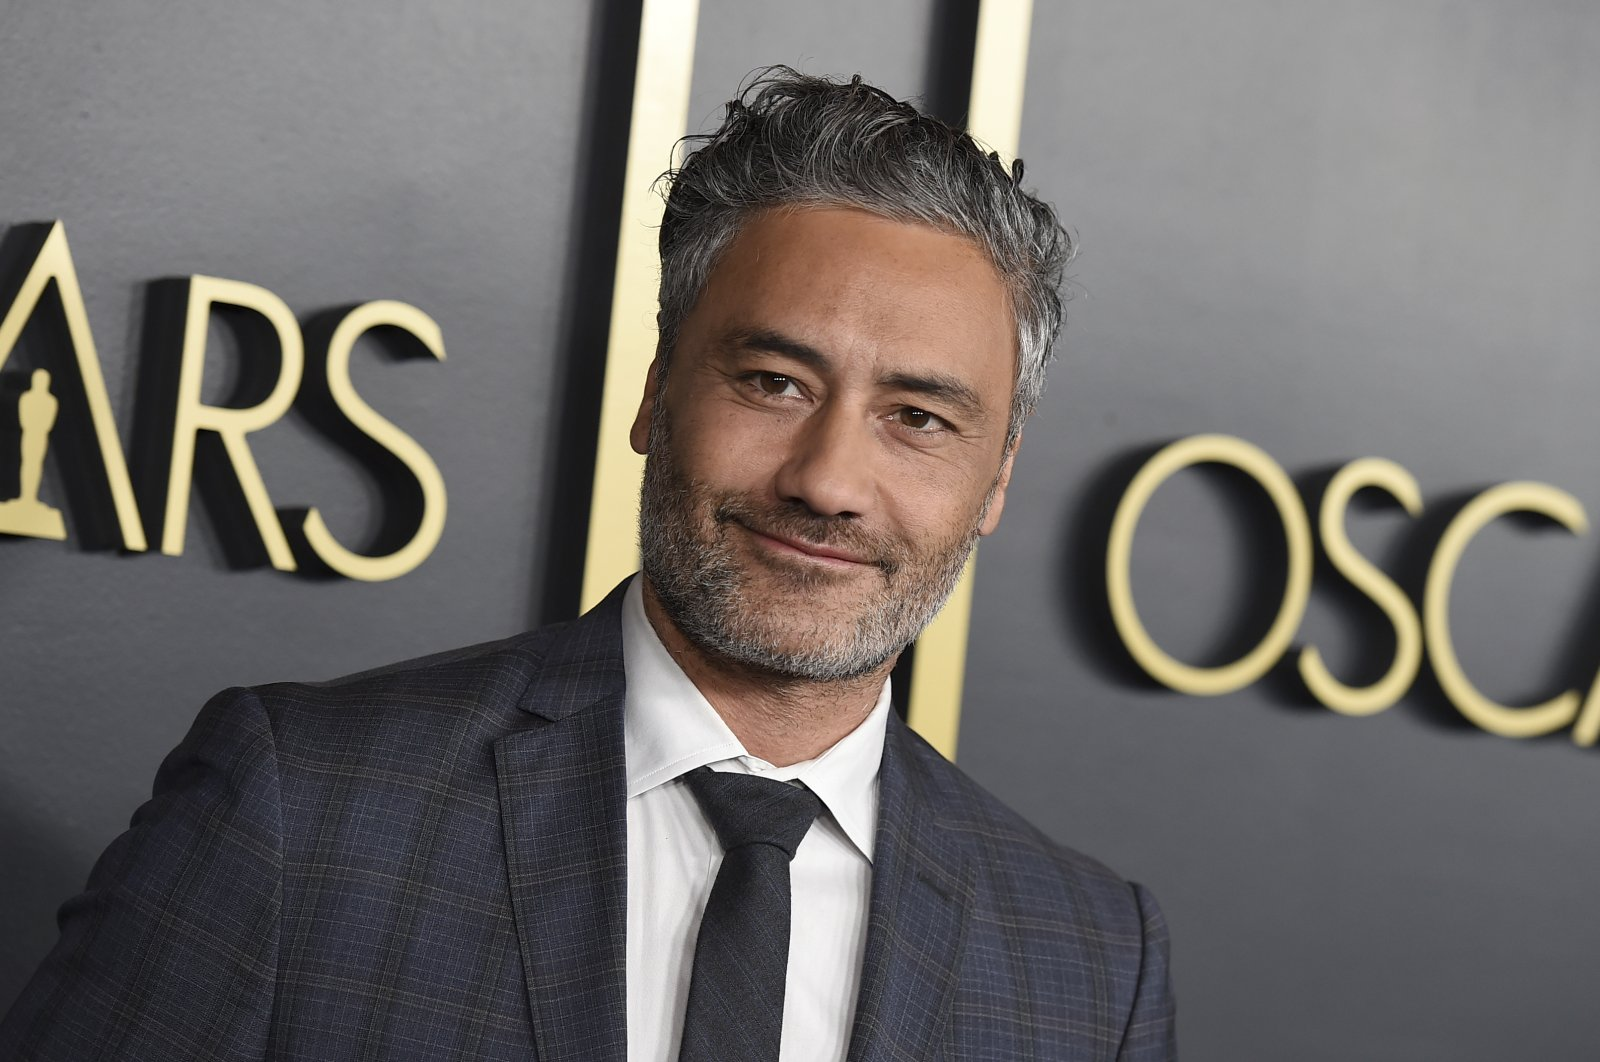 Taika Waititi at the 92nd Academy Awards Nominees Luncheon in Los Angeles, Jan. 27, 2020. (AP Photo)